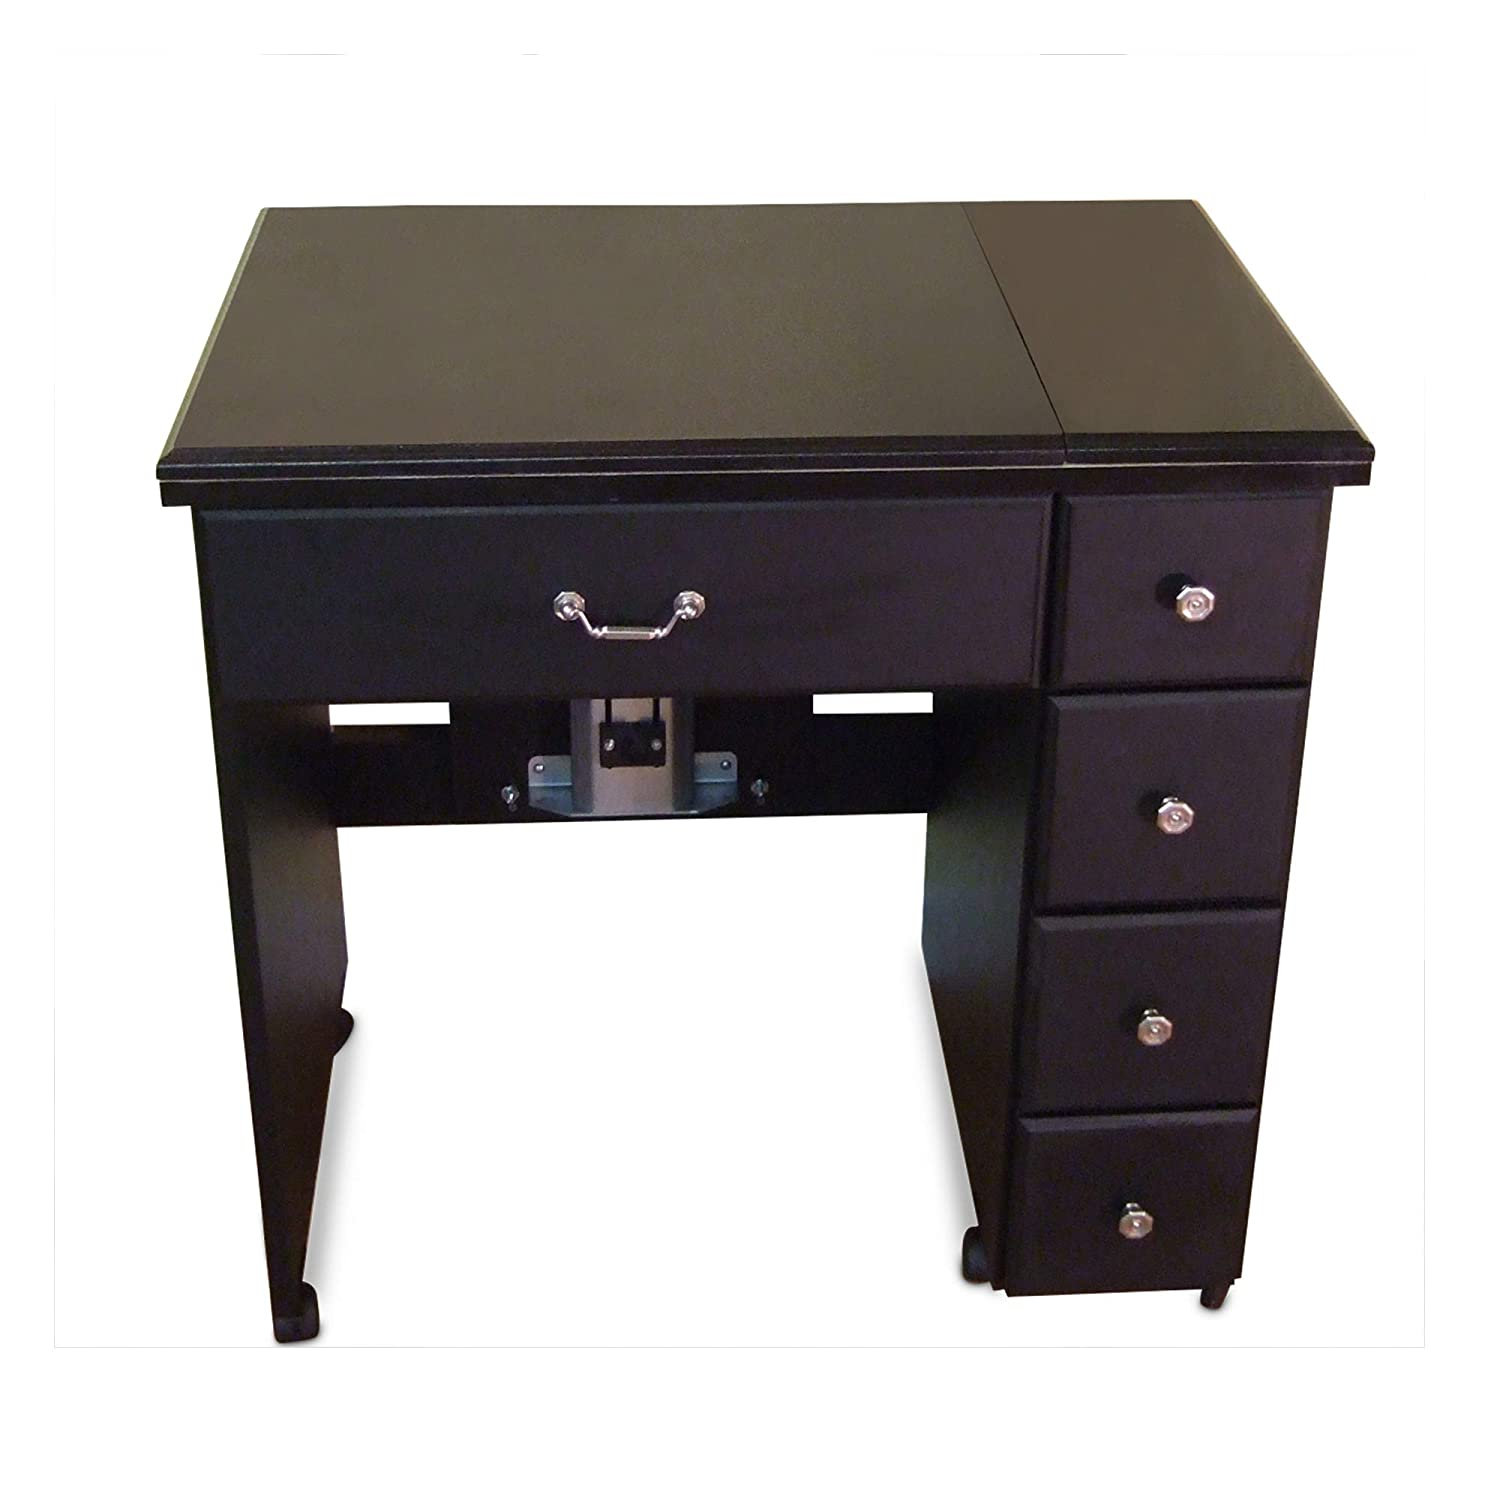 Quilting Black Finish and Crafting Portable Sewing Table with Wheels and Airlift Cutting Arrow 901 Auntie Sewing